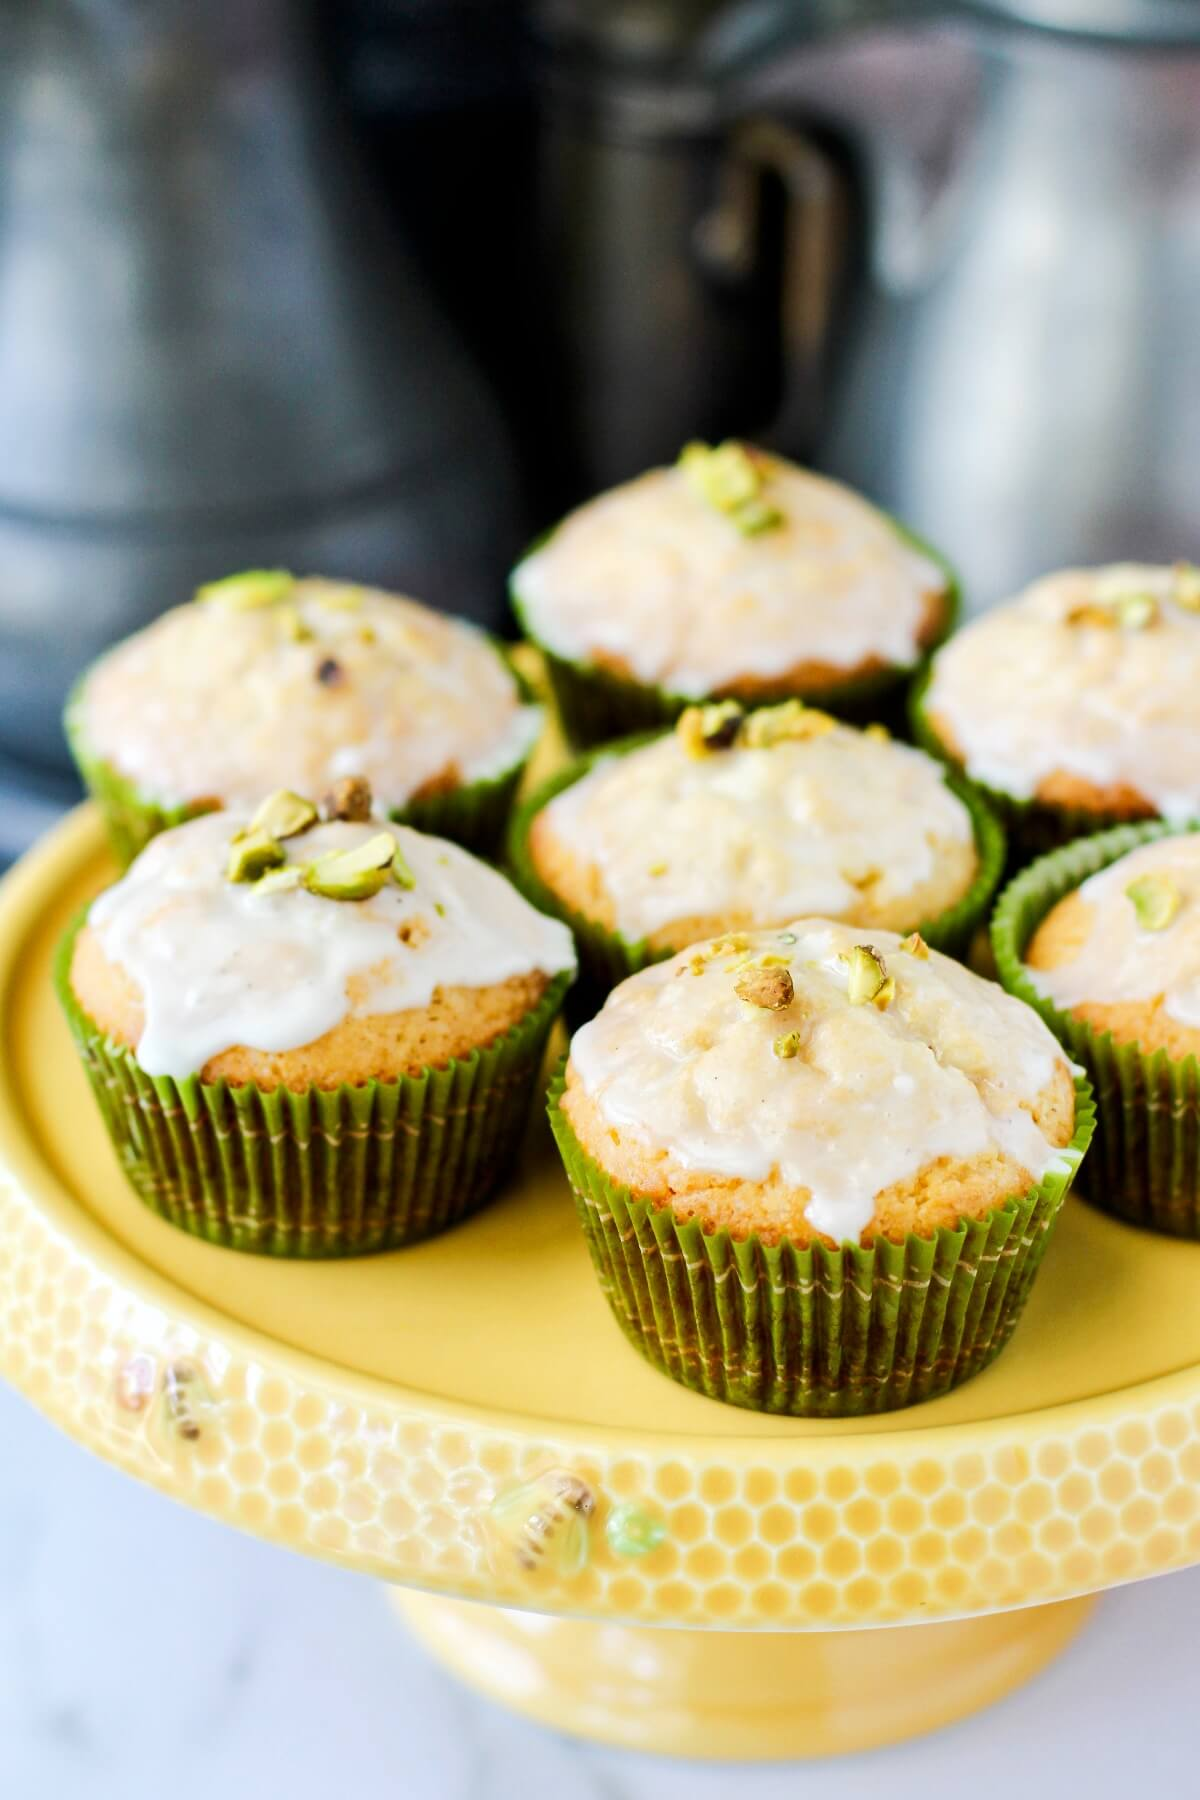 White Chocolate Muffins with a Pistachio Topping